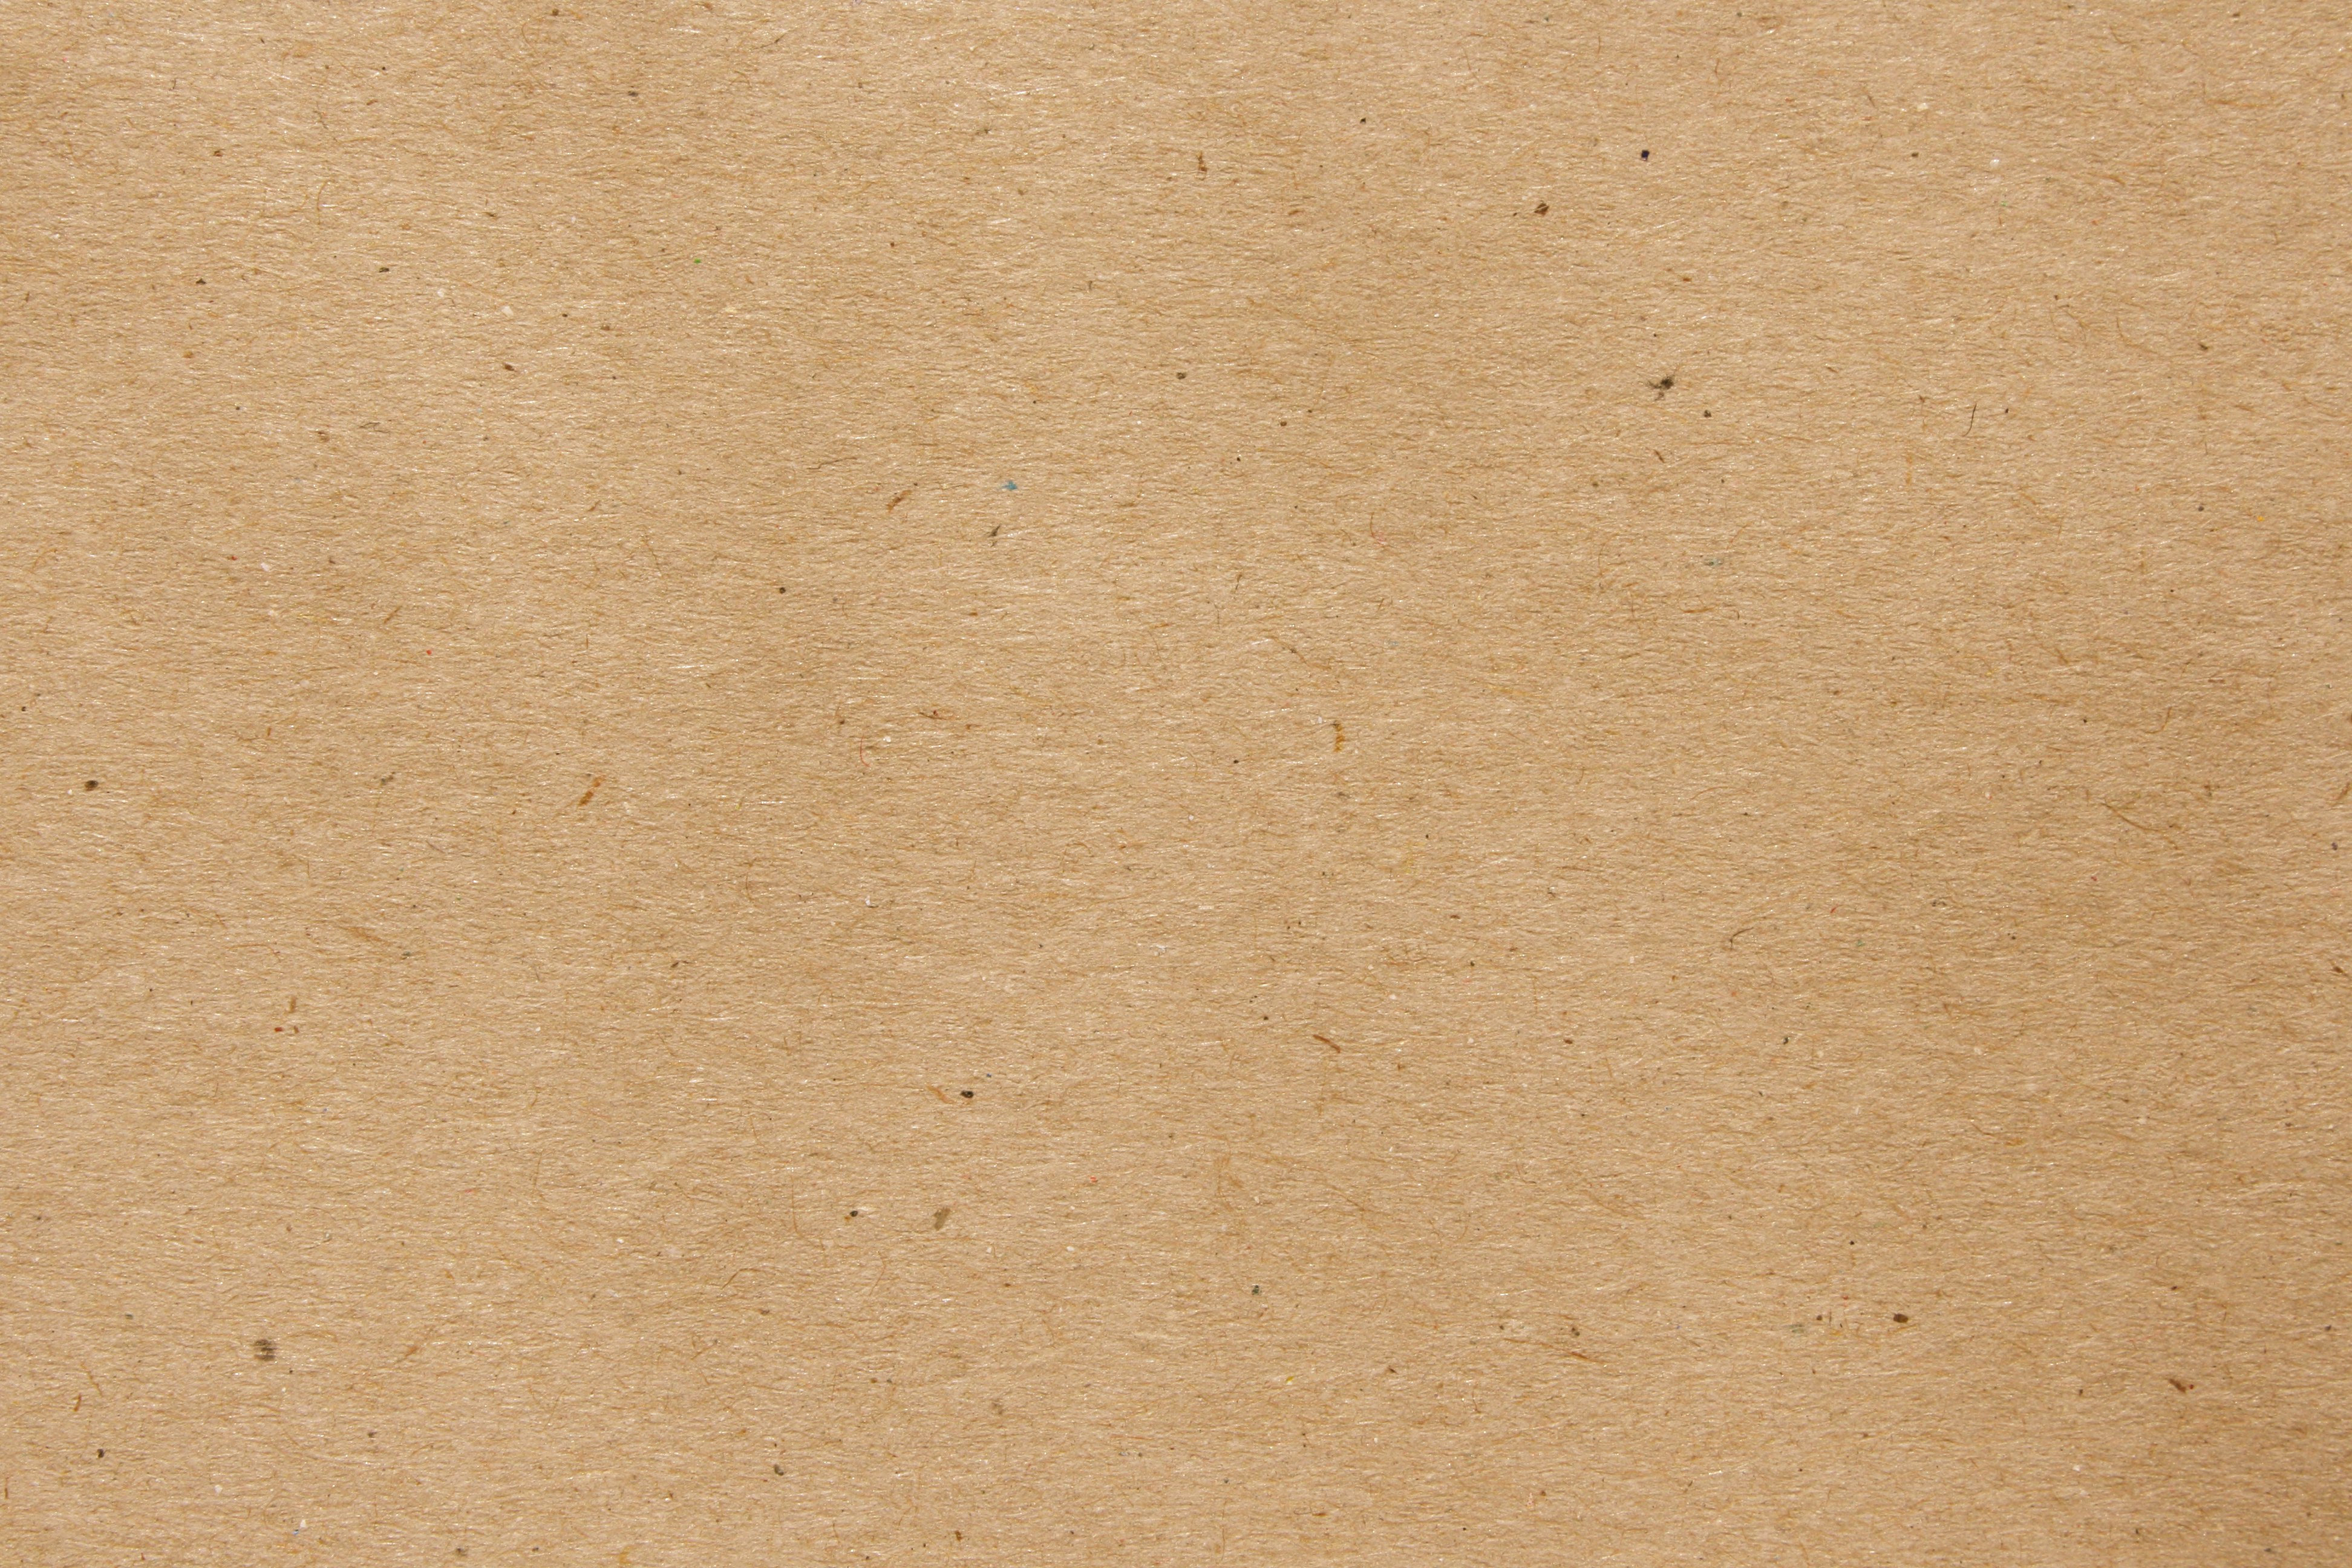 Brand-new Light Brown or Tan Paper Texture with Flecks Picture | Free  PL48